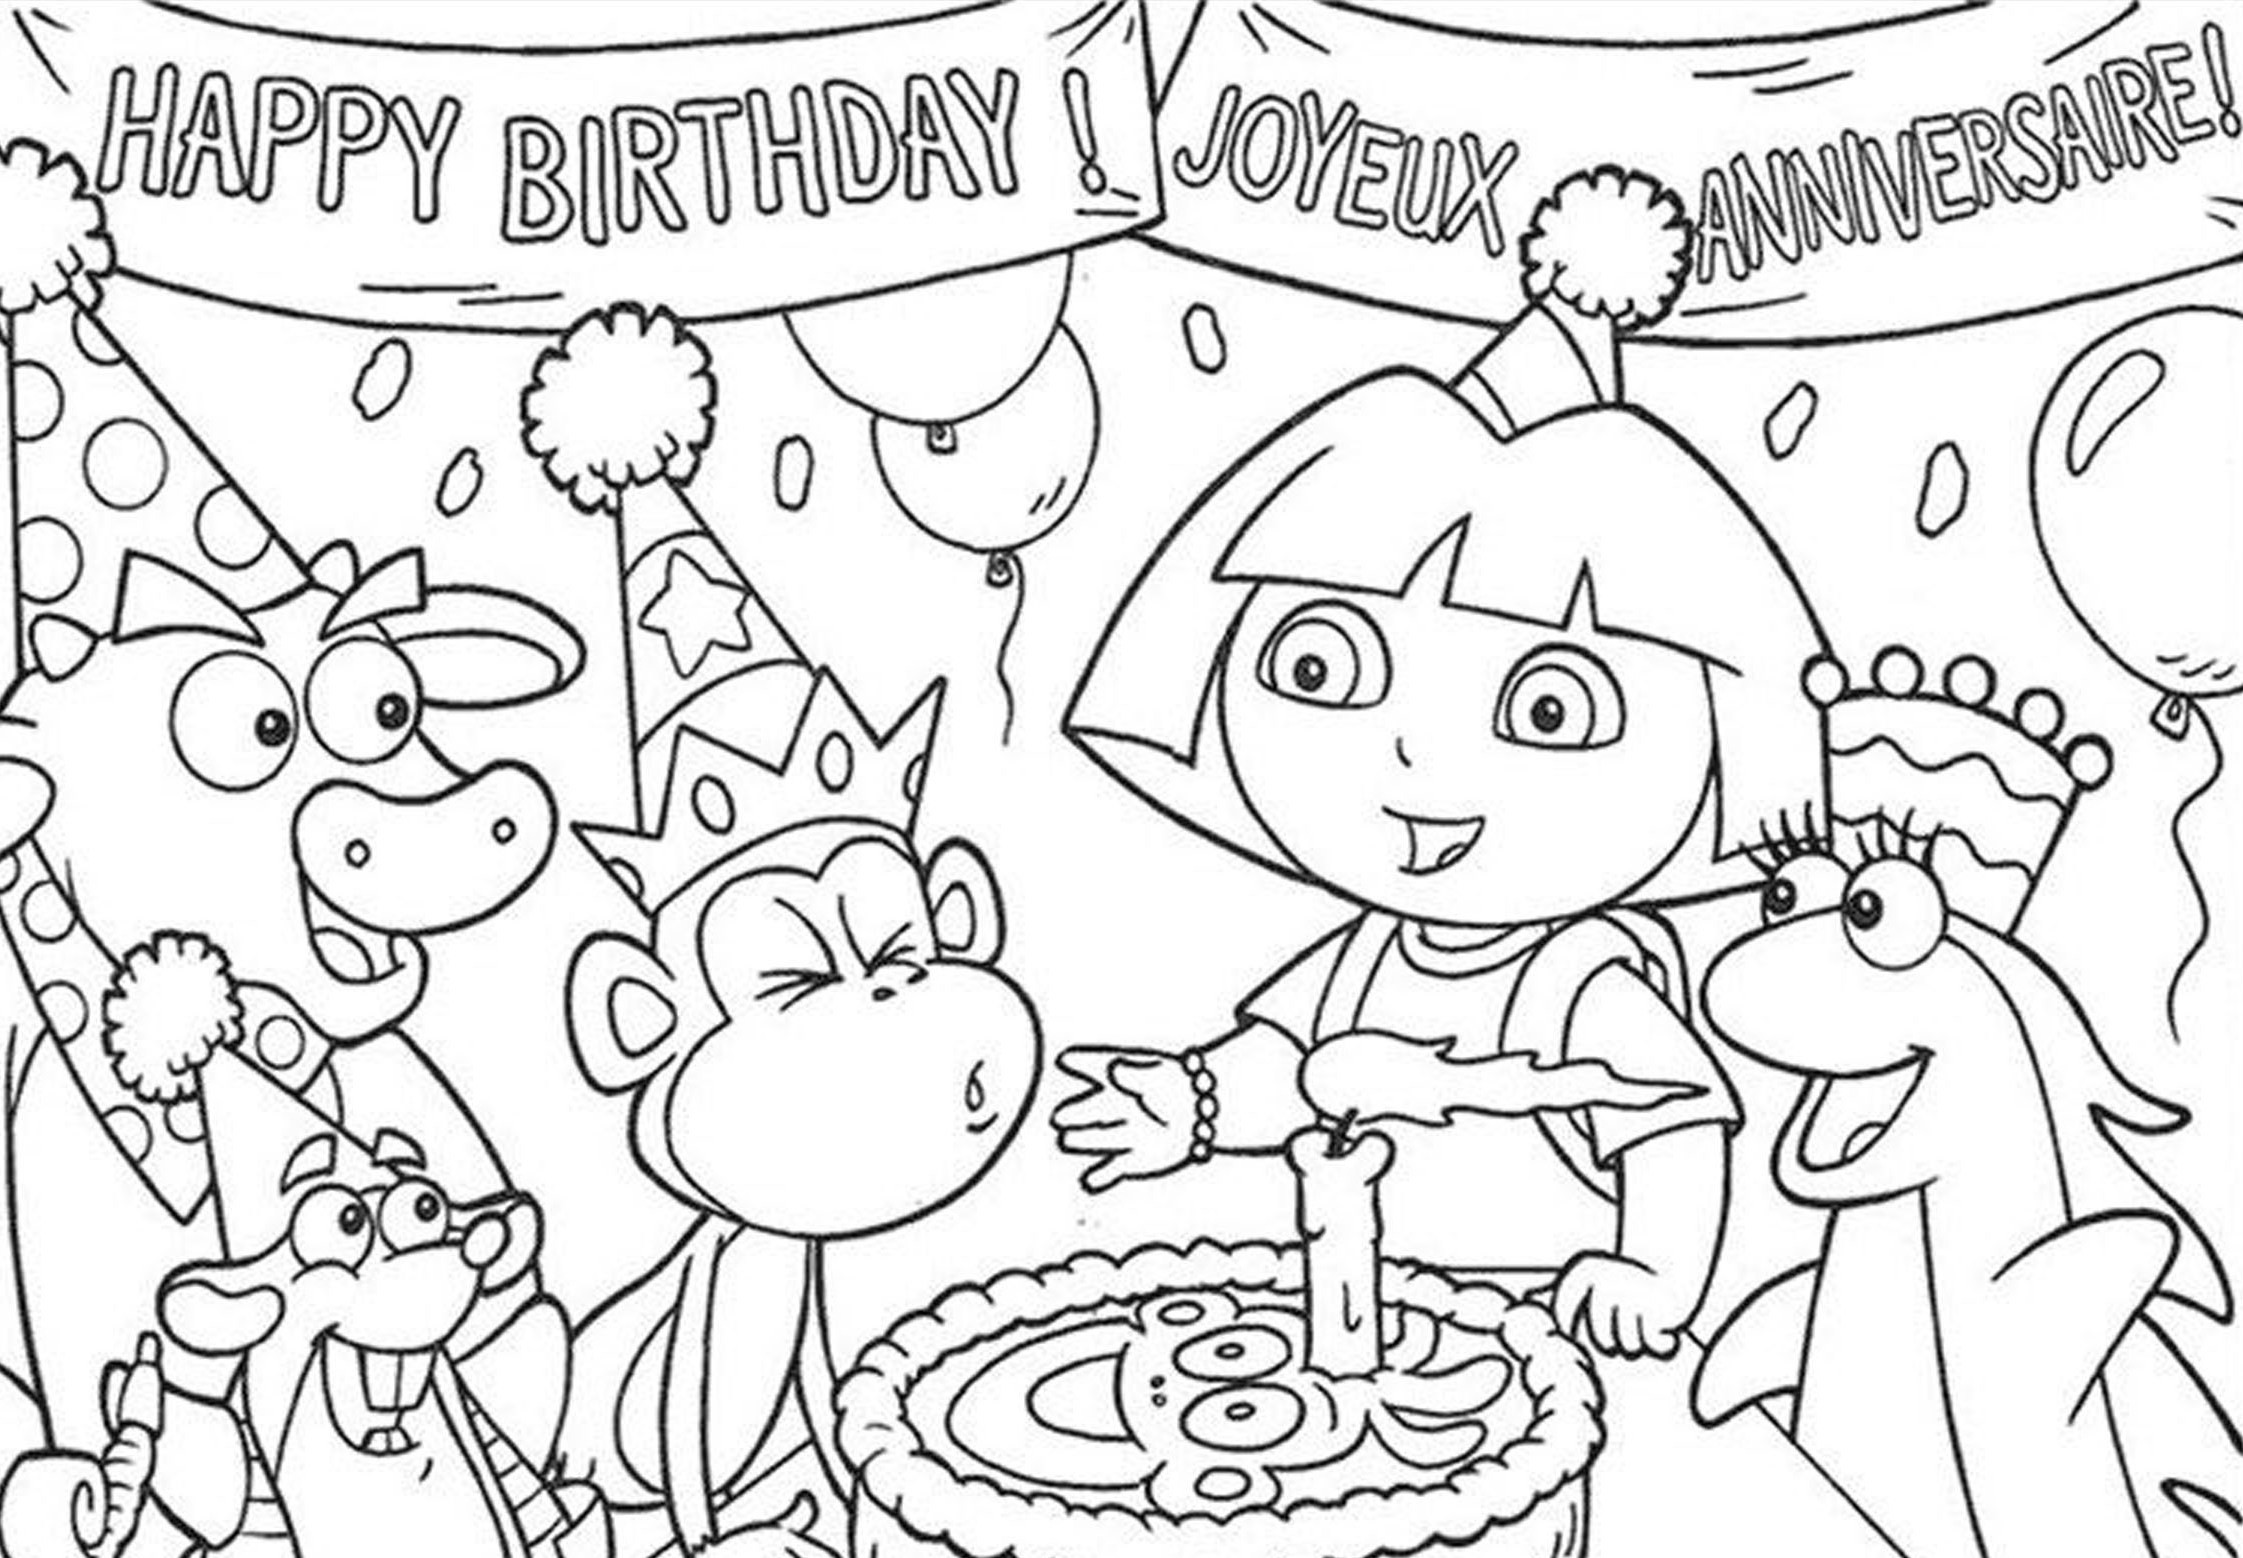 Dora And Friends Drawing at GetDrawings.com | Free for personal use ...